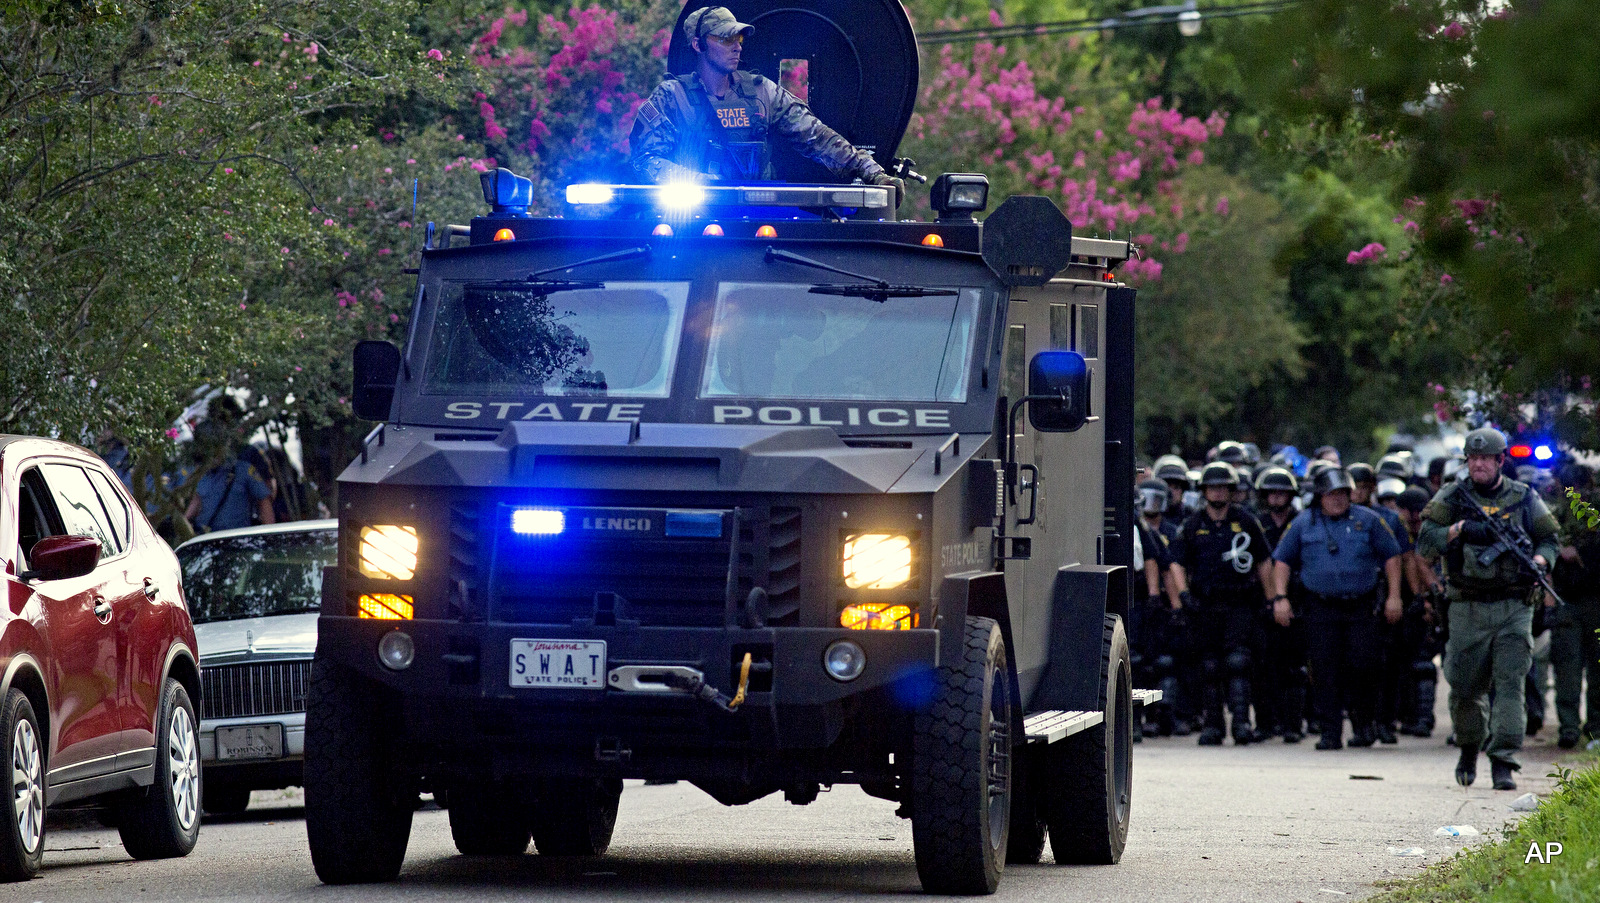 An armored police truck leads a troop of police through a residential neighborhood in Baton Rouge, La. on Sunday, July 10, 2016.